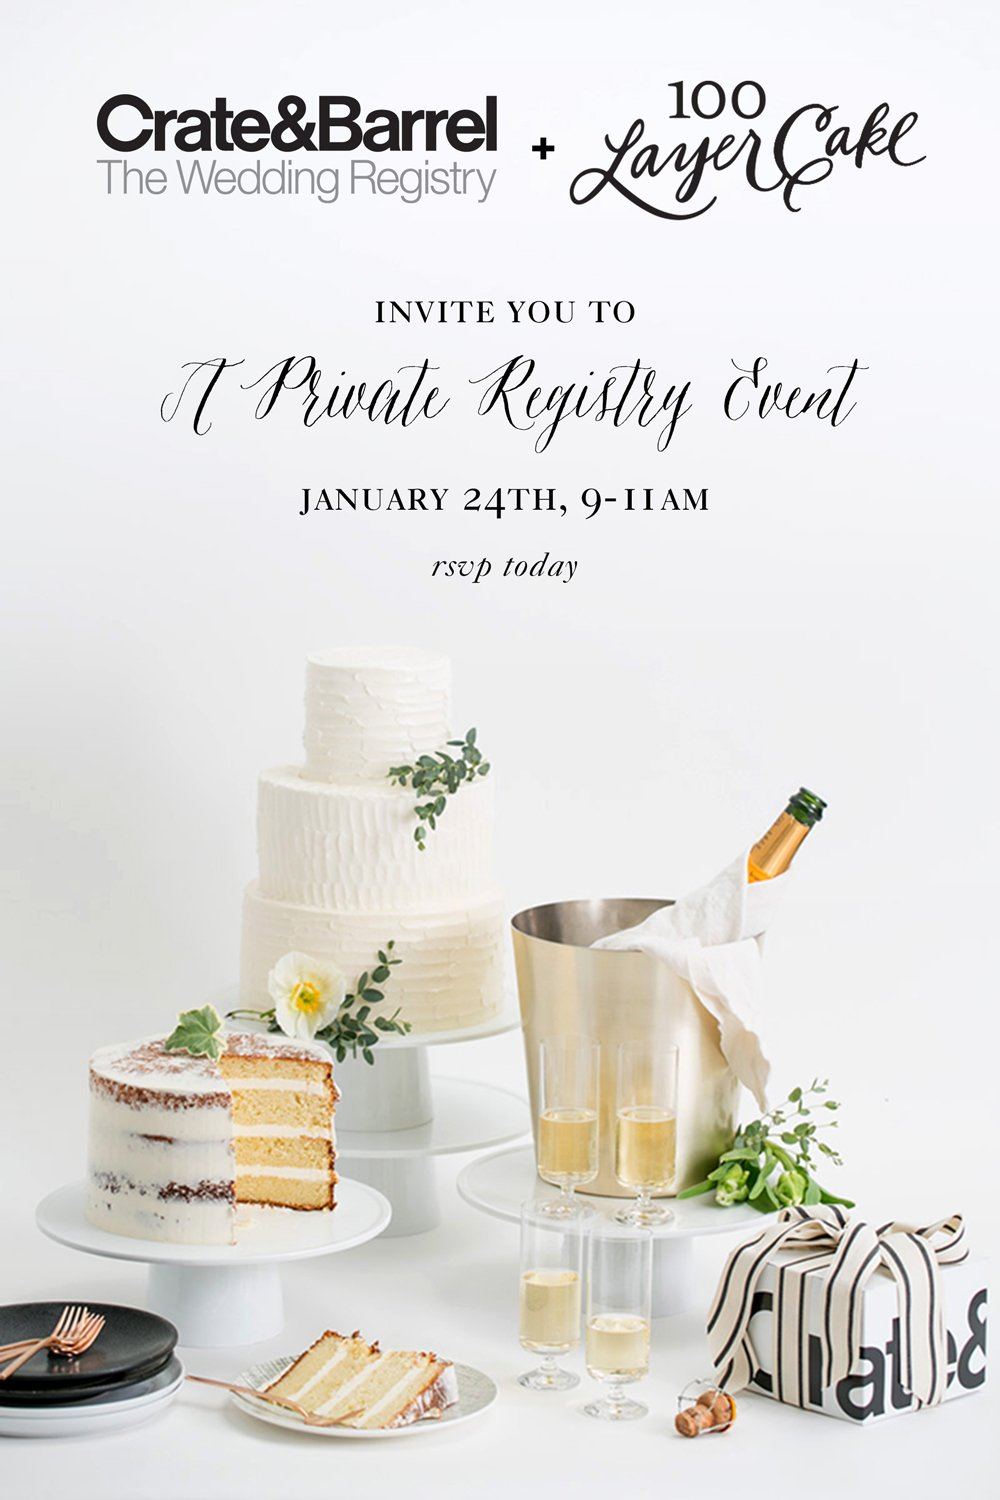 Crate Barrel Wedding Registry.Private Registry Event With 100 Layer Cake Crate And